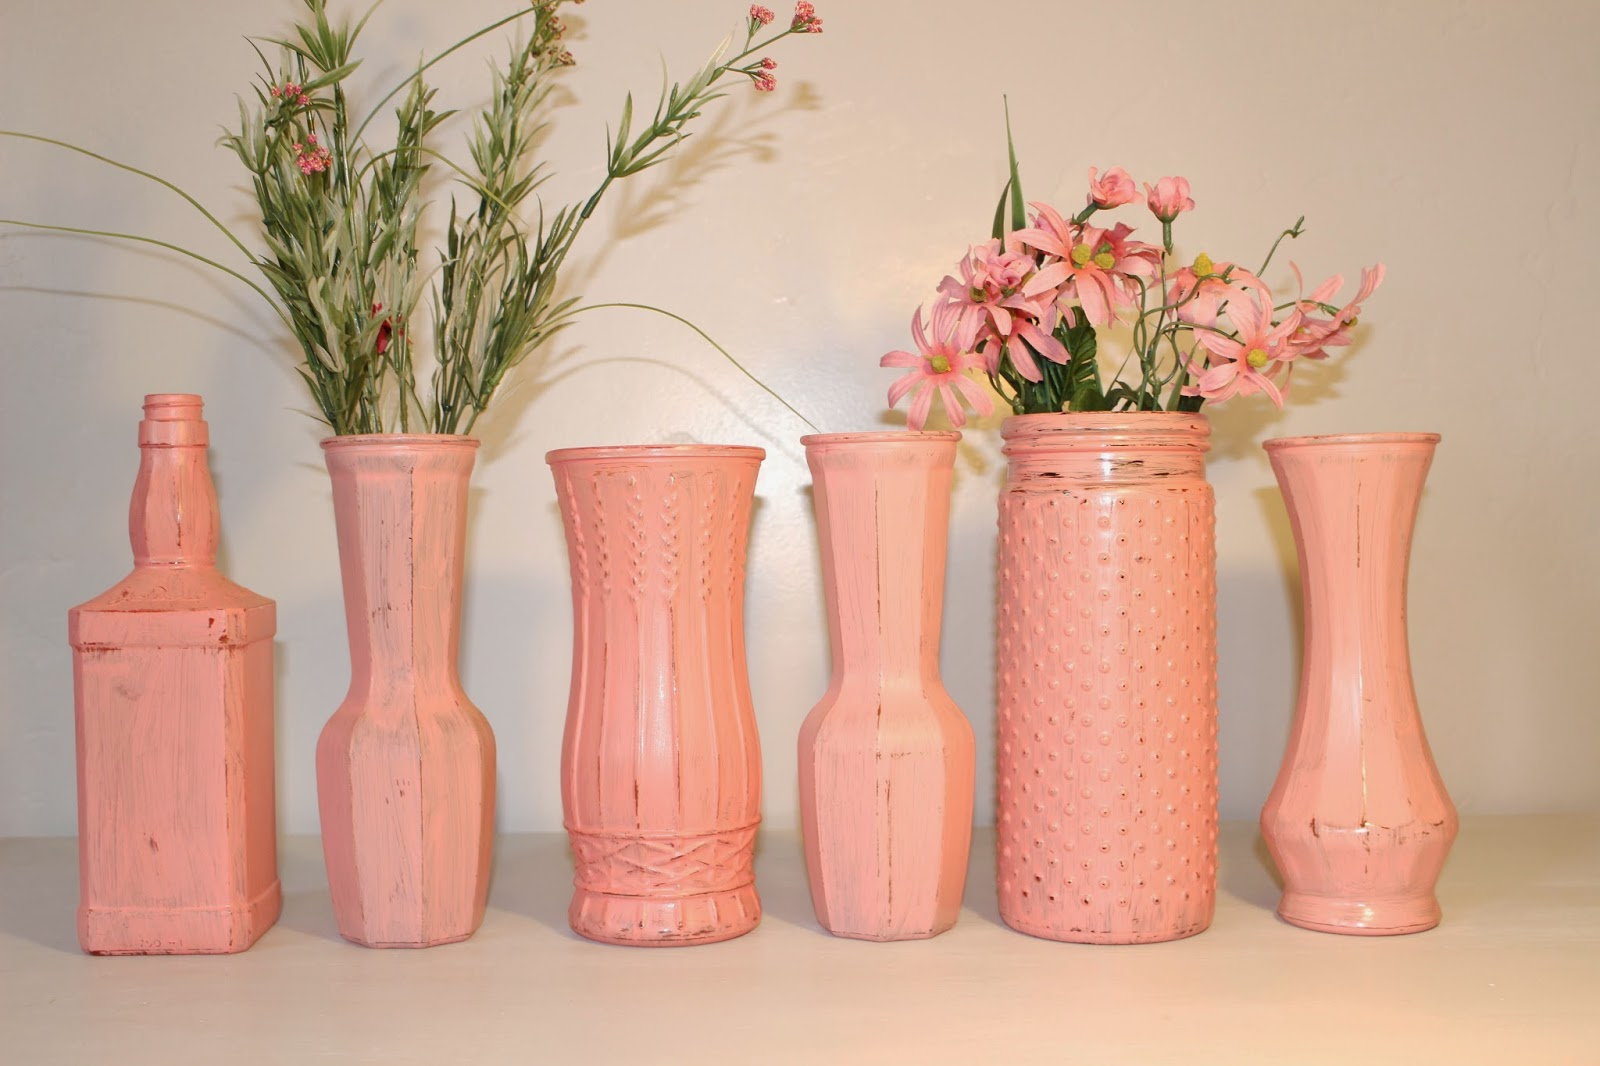 rustic vase, wedding vase, rustic wedding vase, handpainted vase, coastal wedding vase, antique vase, shabby chic vase, distressed vase, wedding decor, rustic wedding decor, rustic wedding centerpiece, coral wedding decor, coral vase, handpainted coral vase, rustic salmon vase, peach vase, rustic coral vase, coral wedding decor